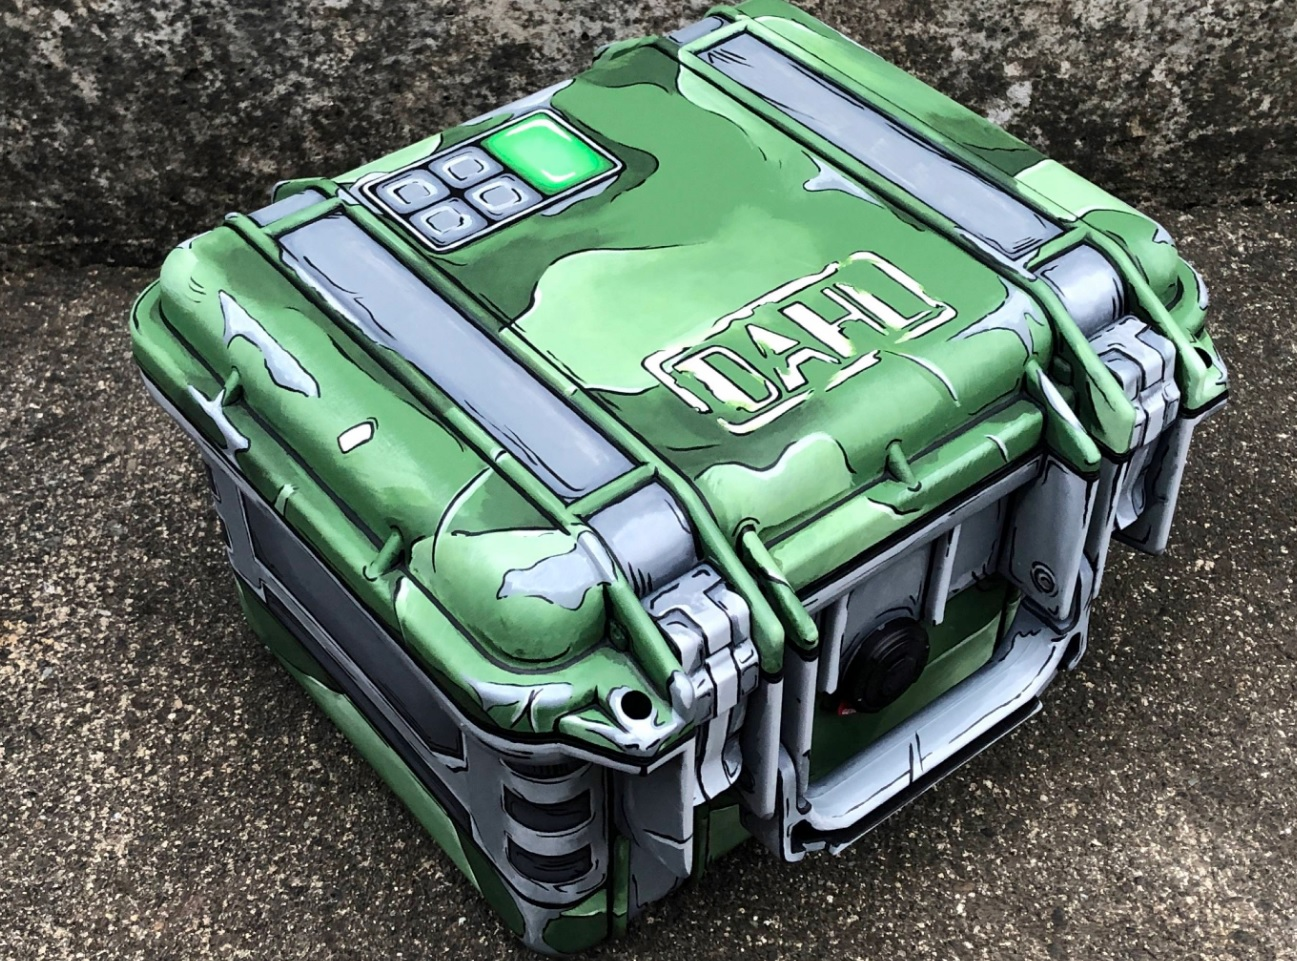 This real-life Borderlands 3 style crate is something else